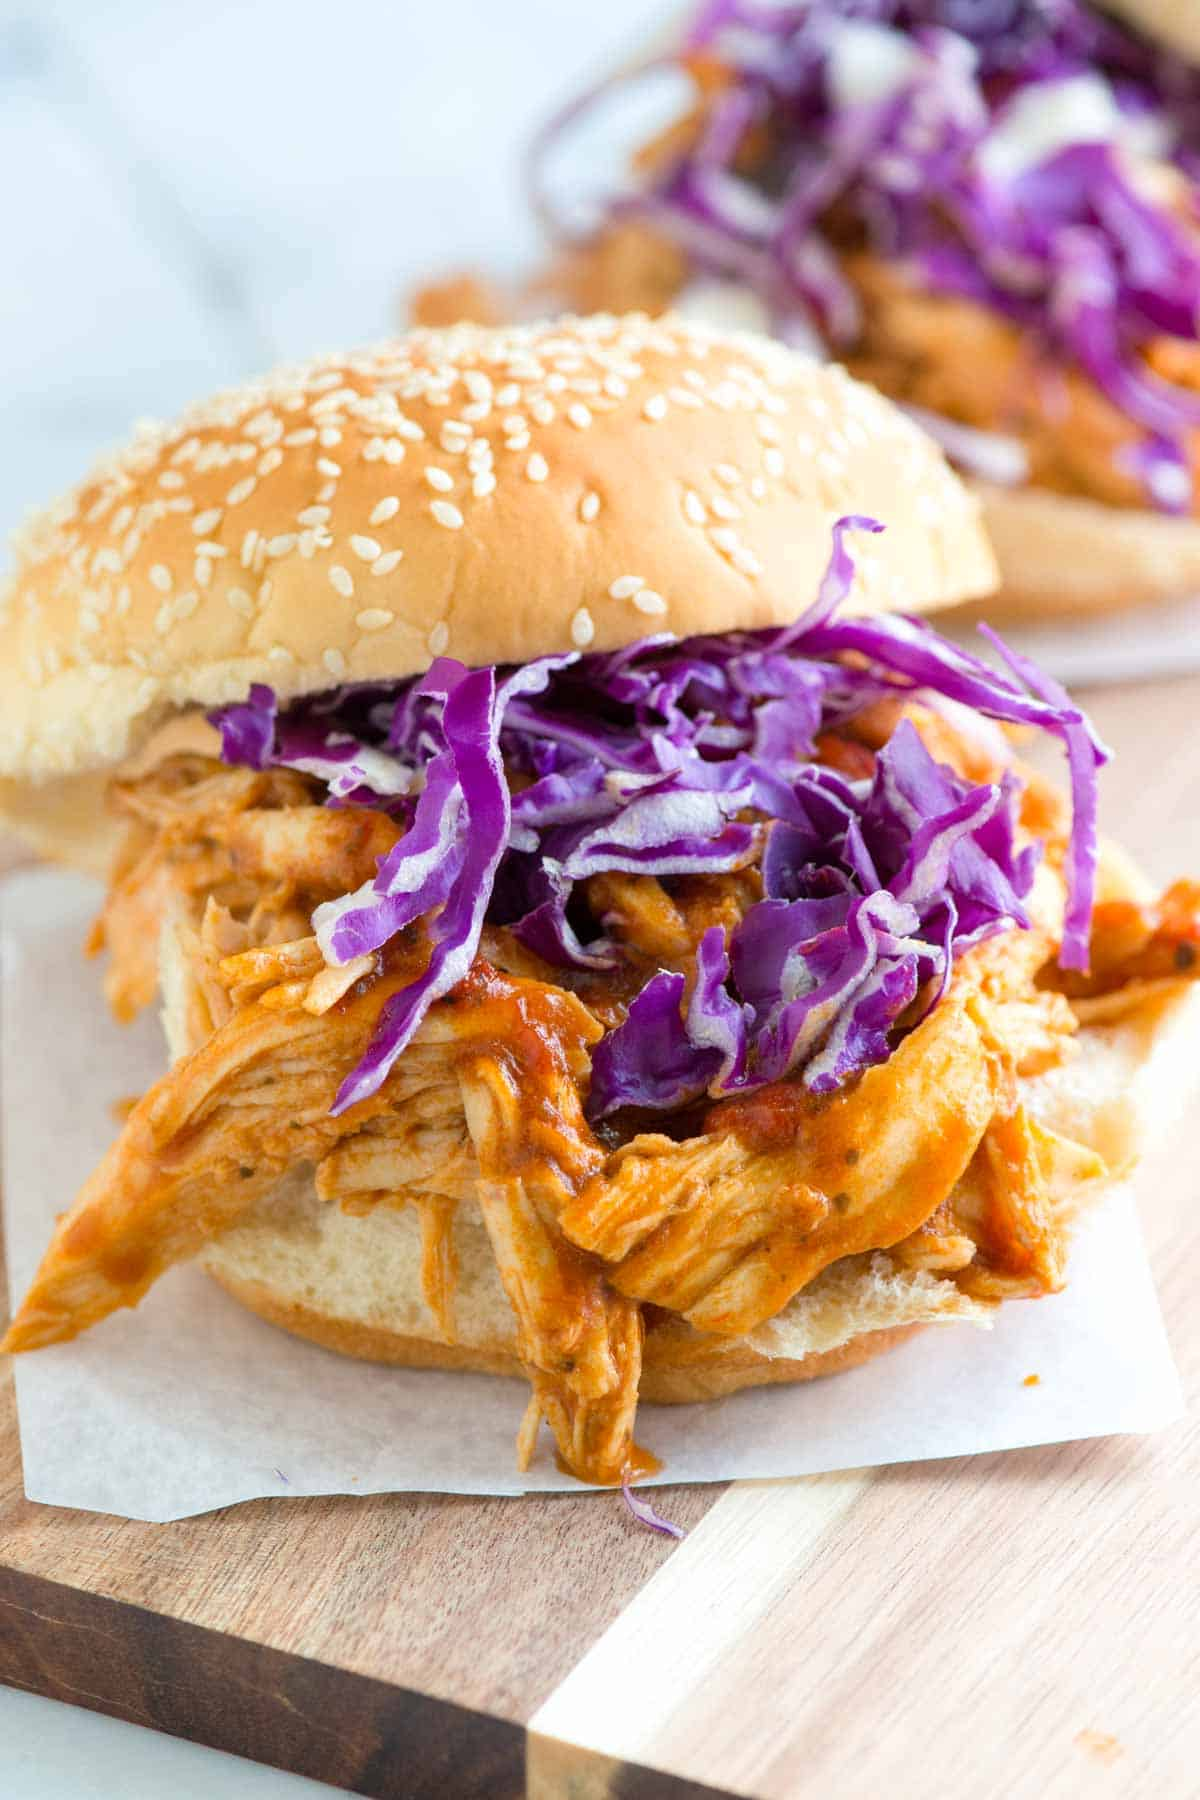 Making Our Tangy Shredded Chicken Sandwiches